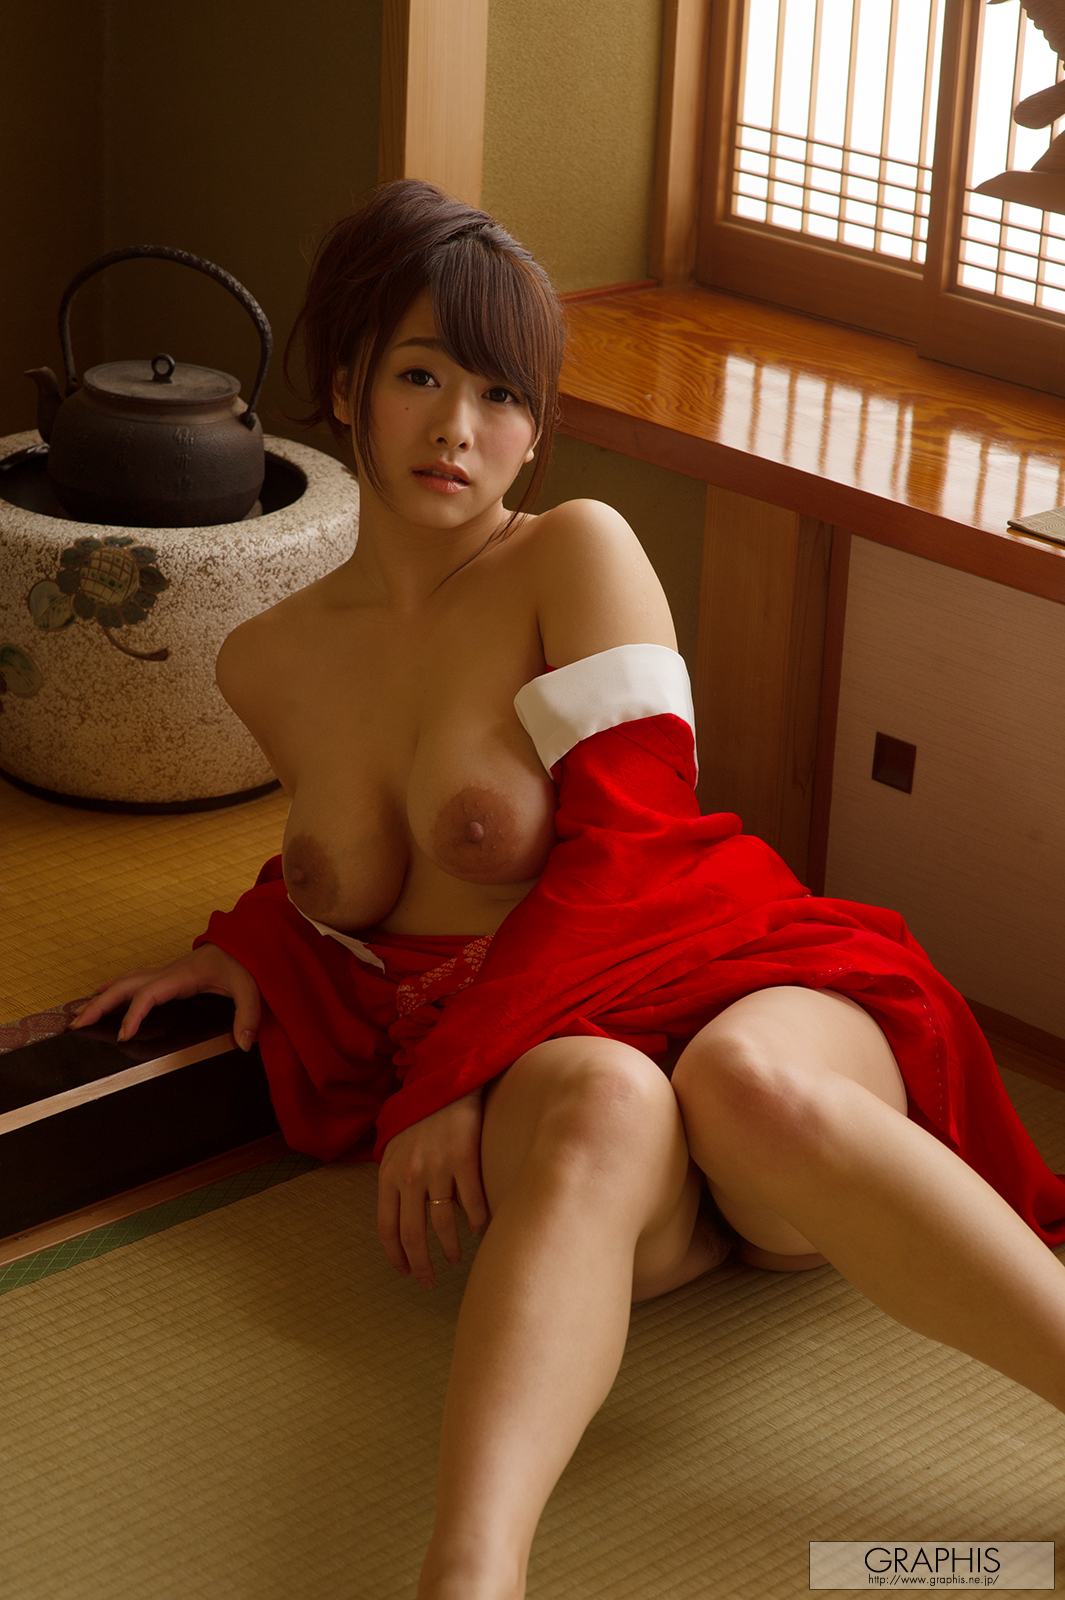 marina-shiraishi-red-kimono-boobs-naked-asian-graphis-12